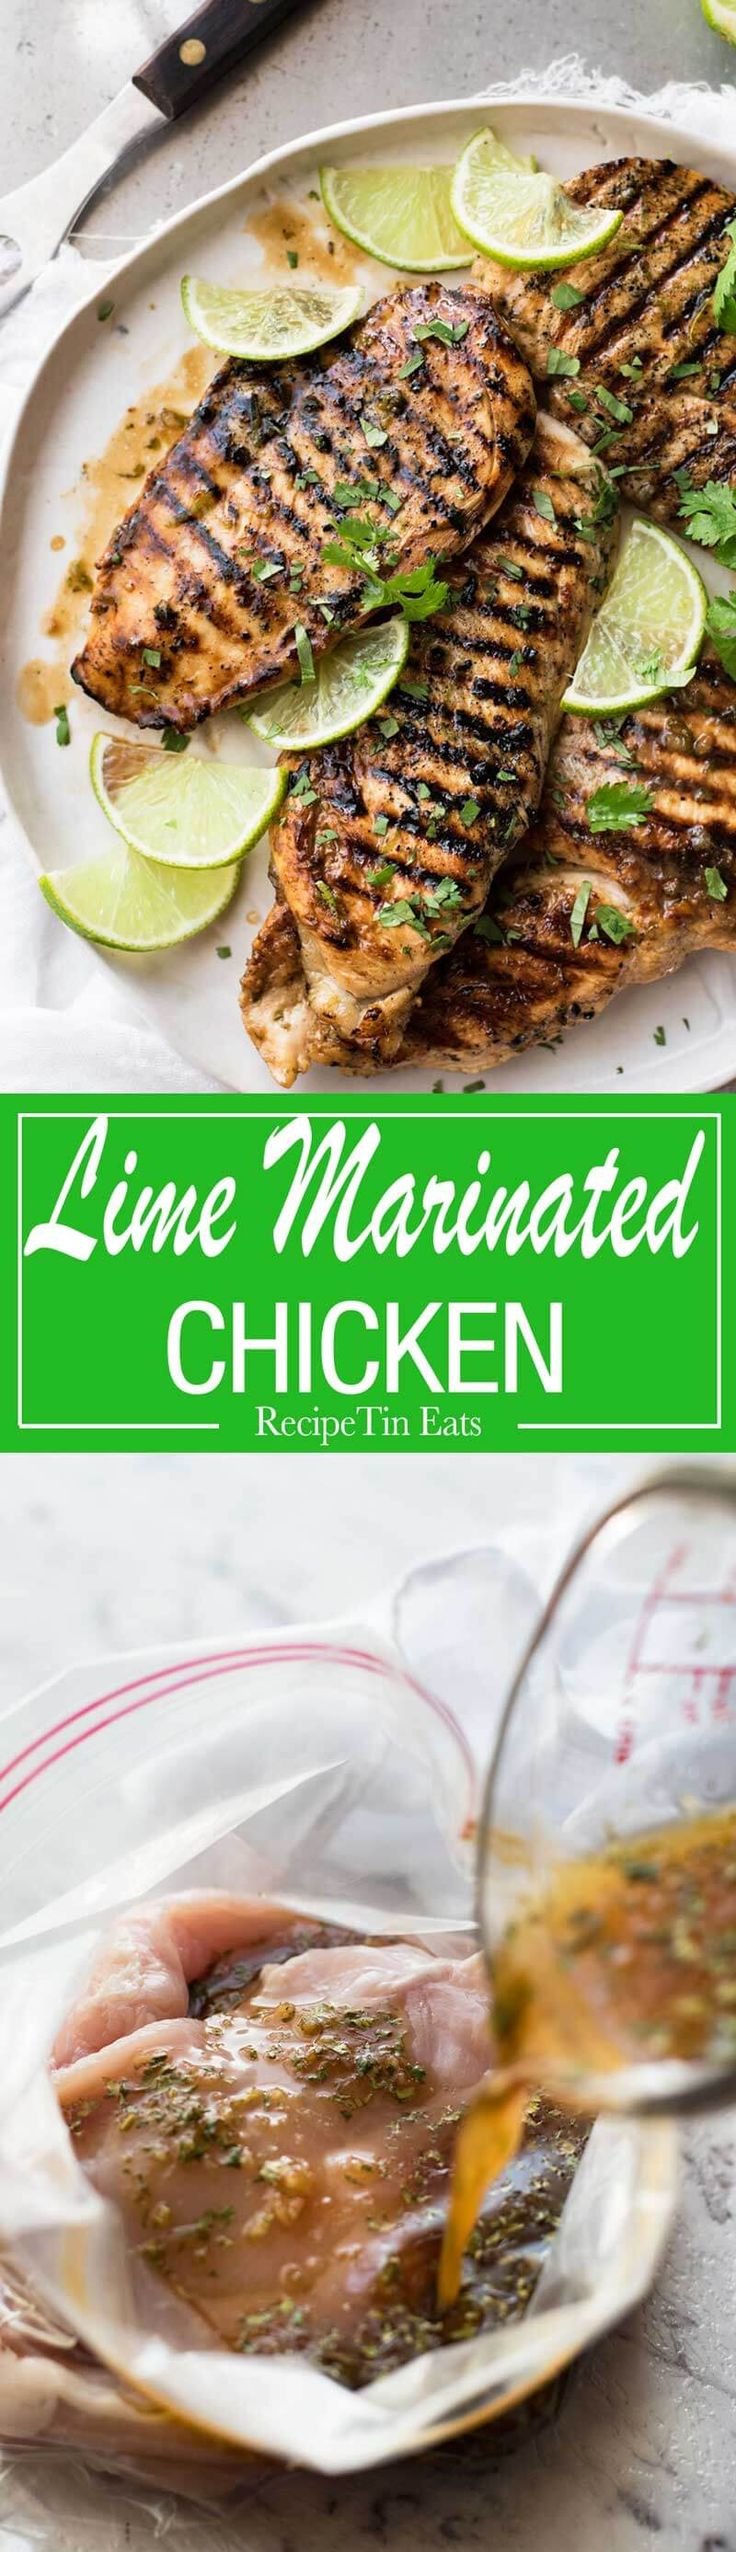 Lovely depth of flavour in this simple marinade that REALLY infuses the chicken…